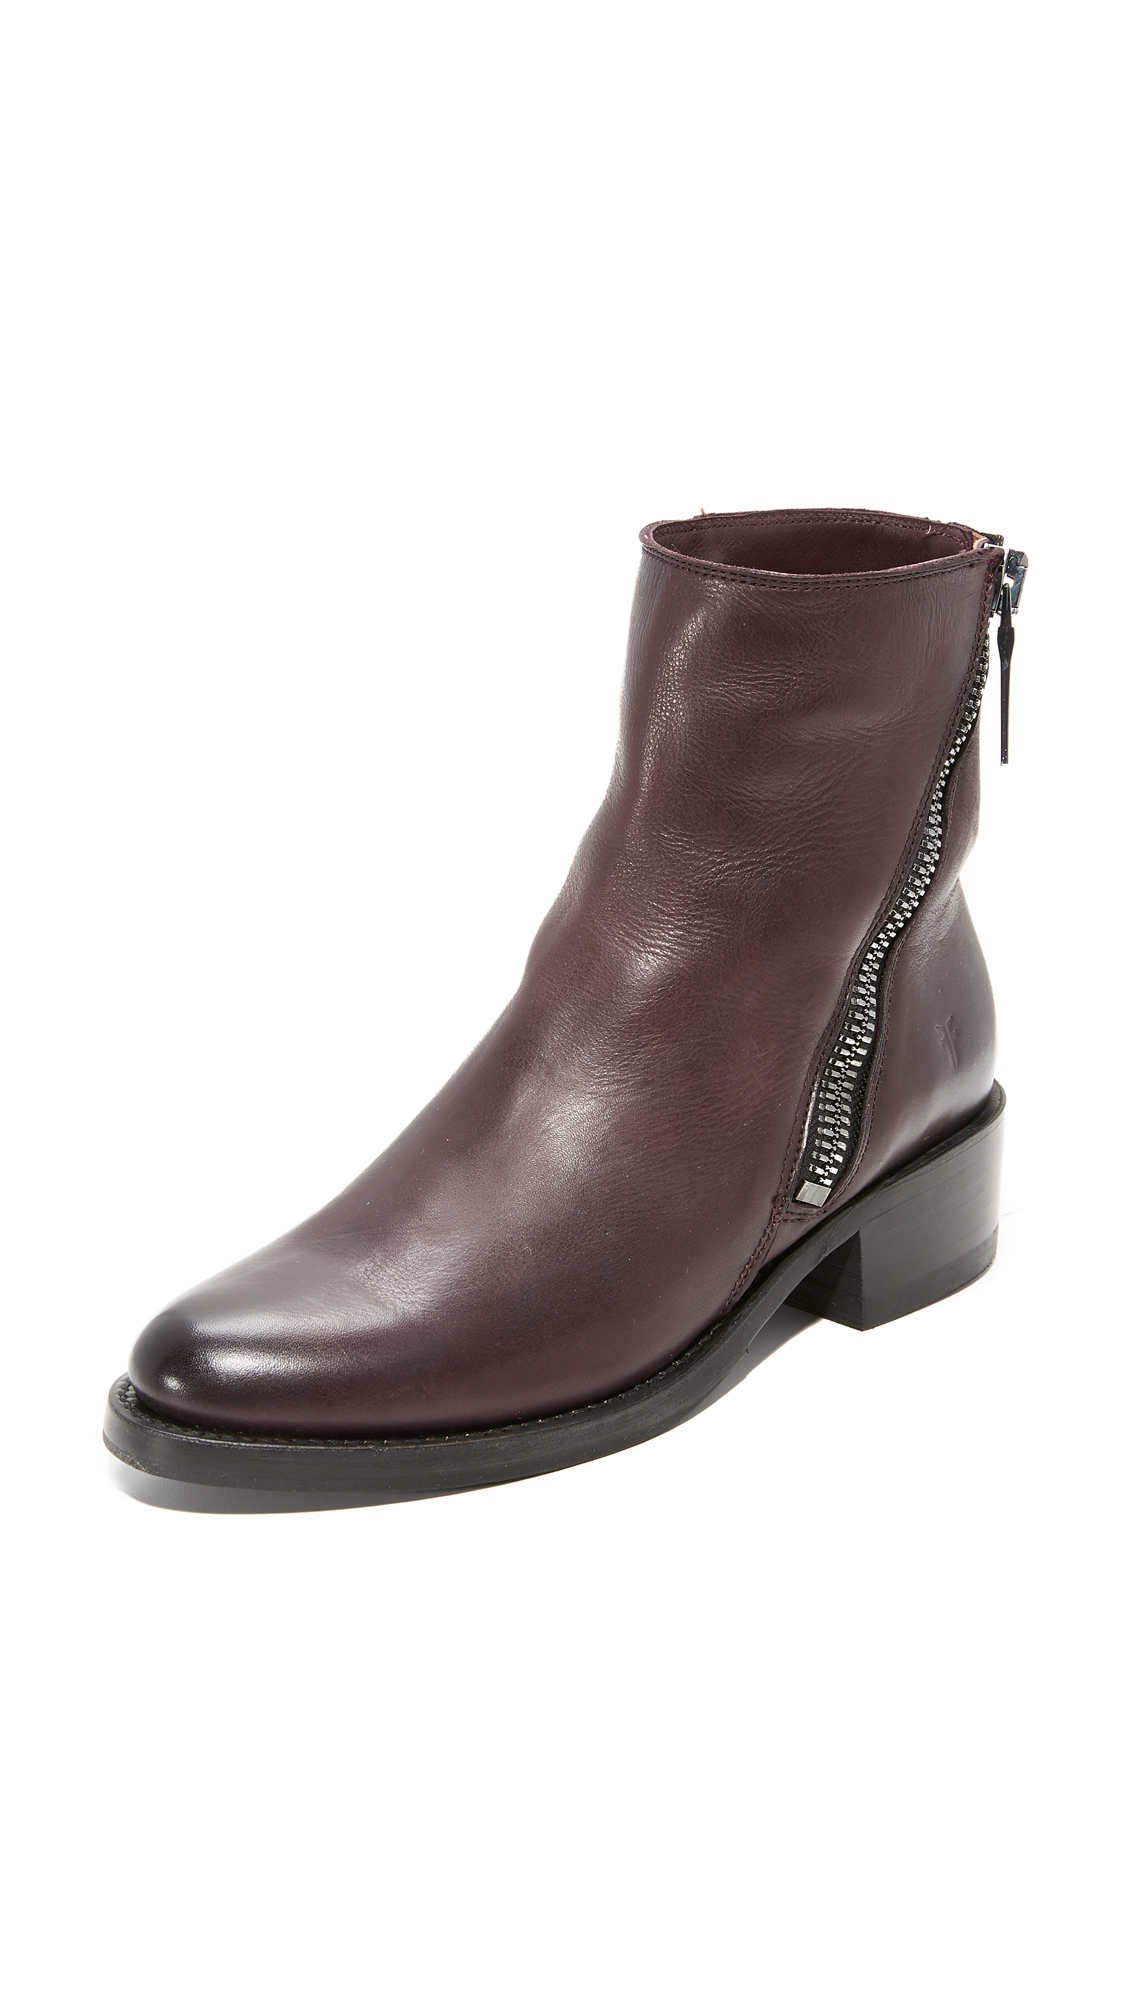 Frye Demi Zip Booties - Wine